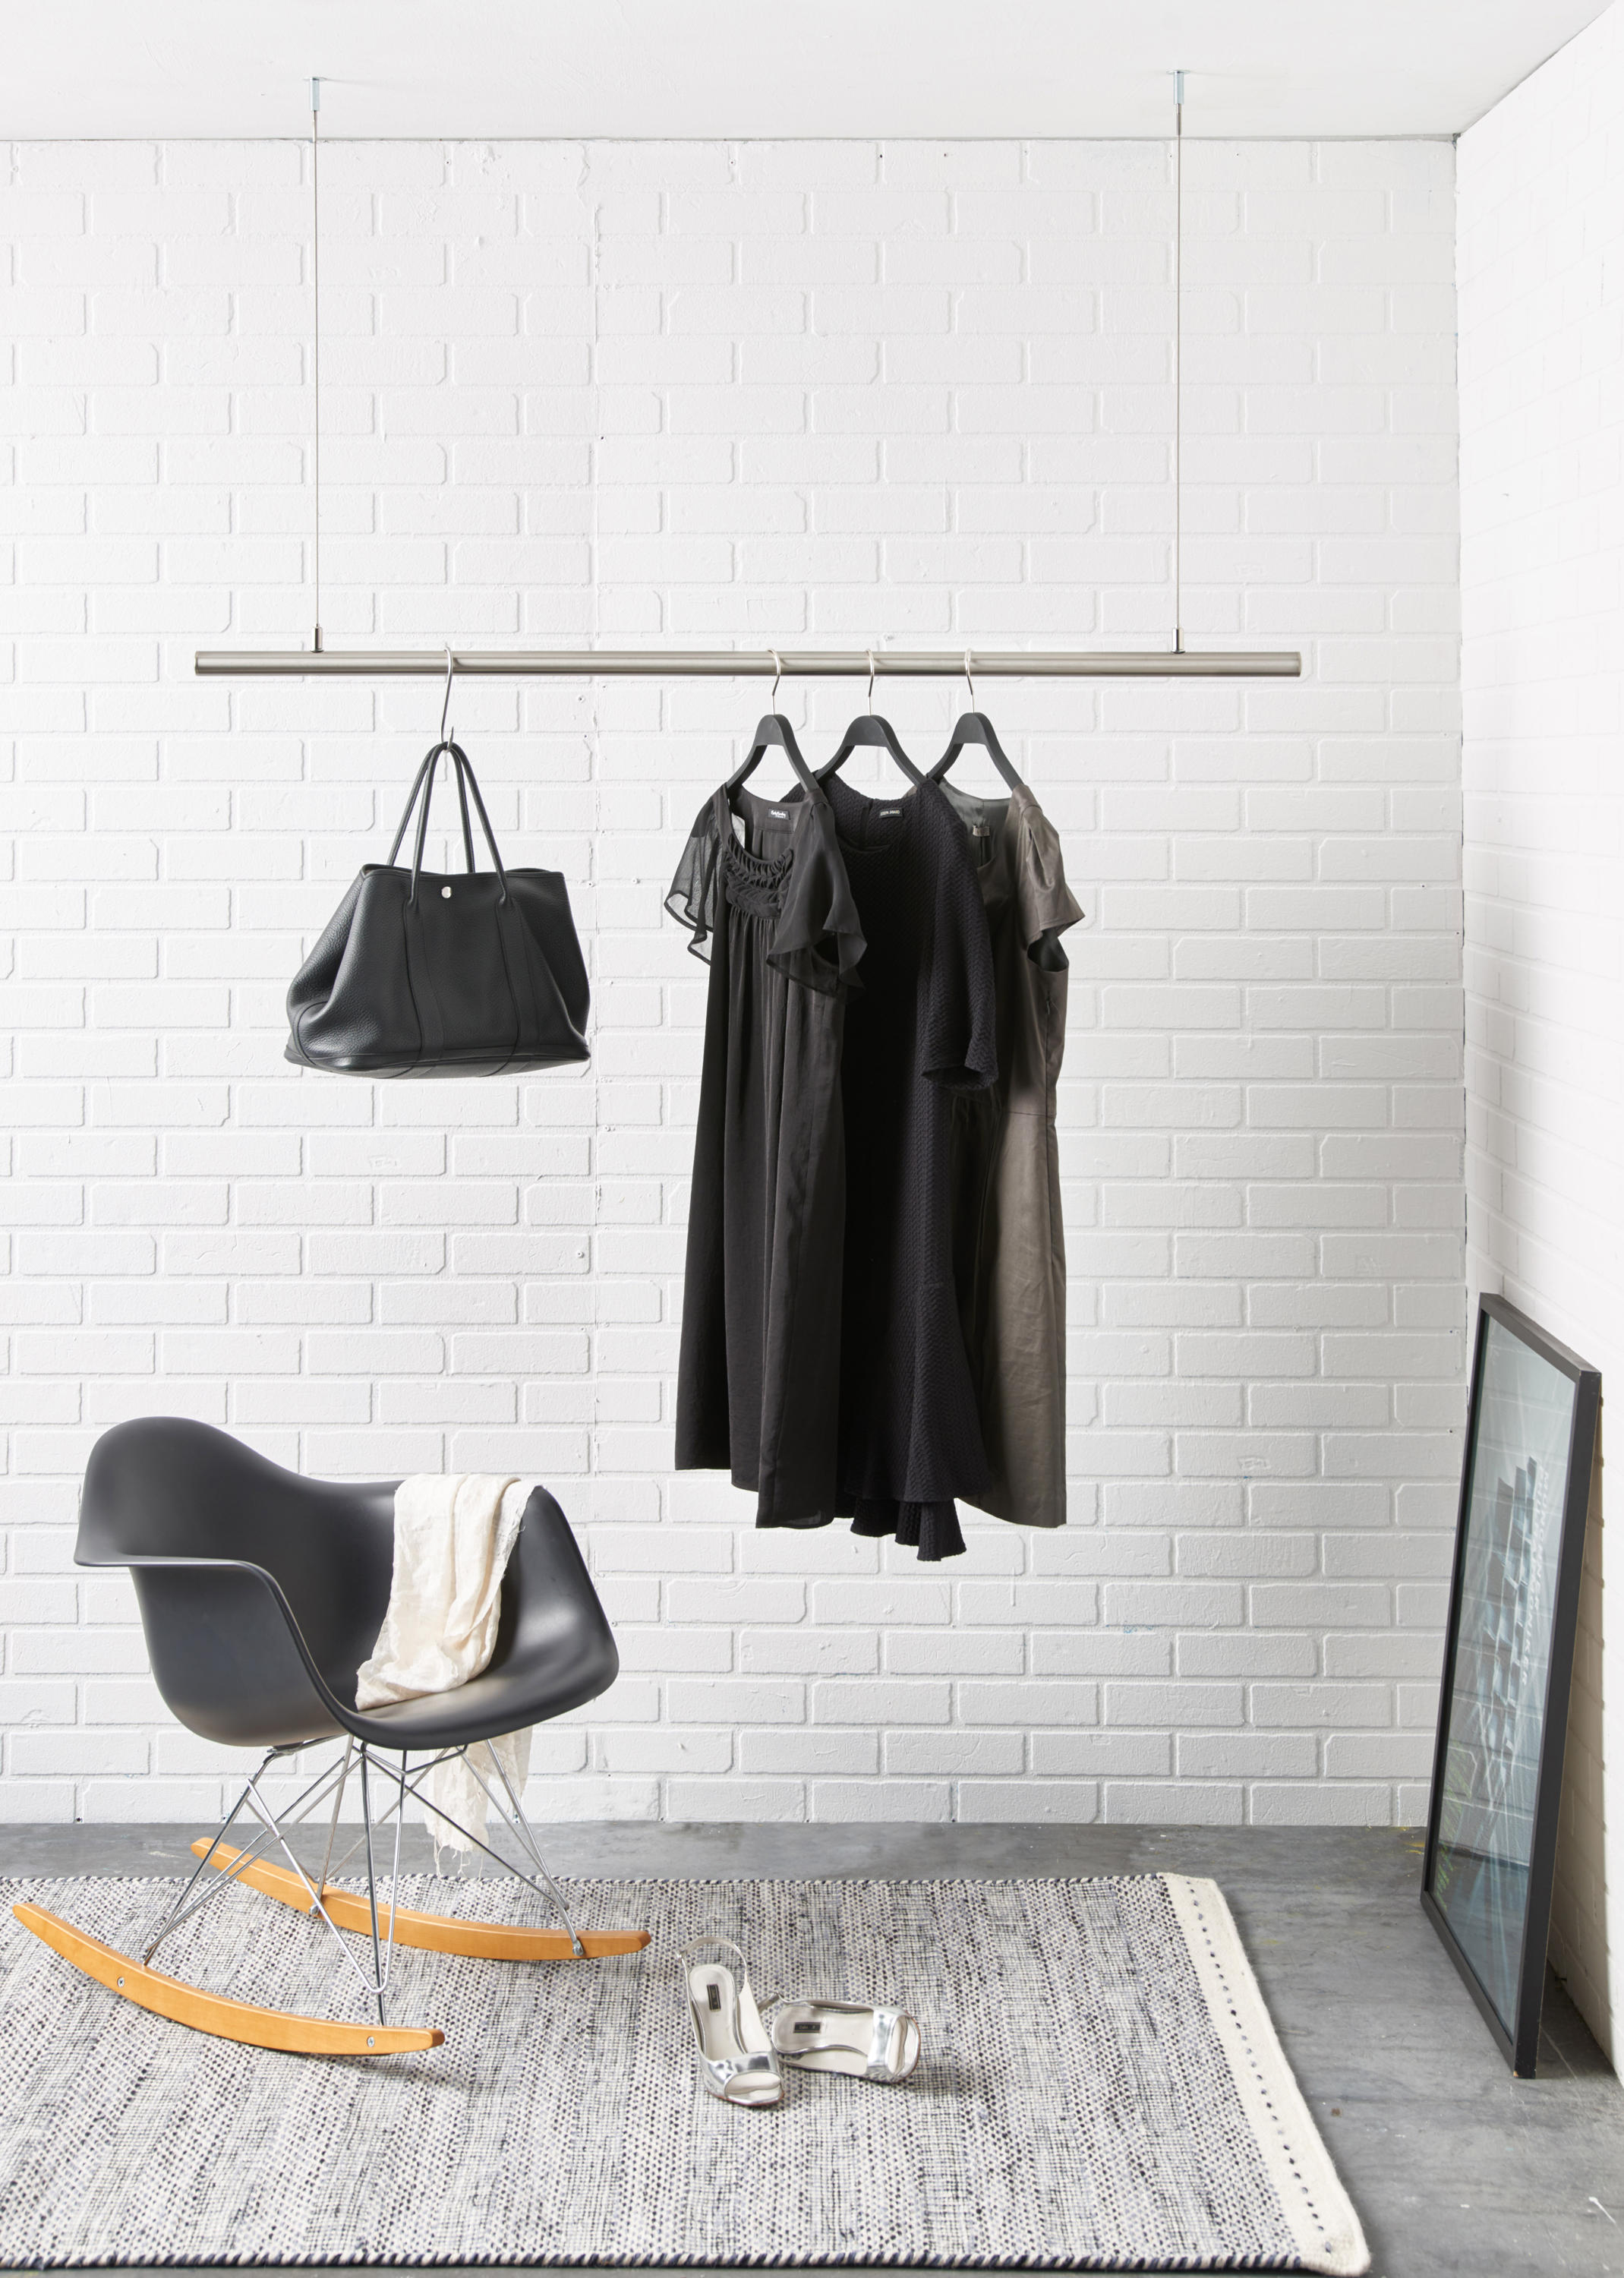 Brand new AIRJUST® SOLO - Ceiling mounted coat racks from RaumForm33  IW66